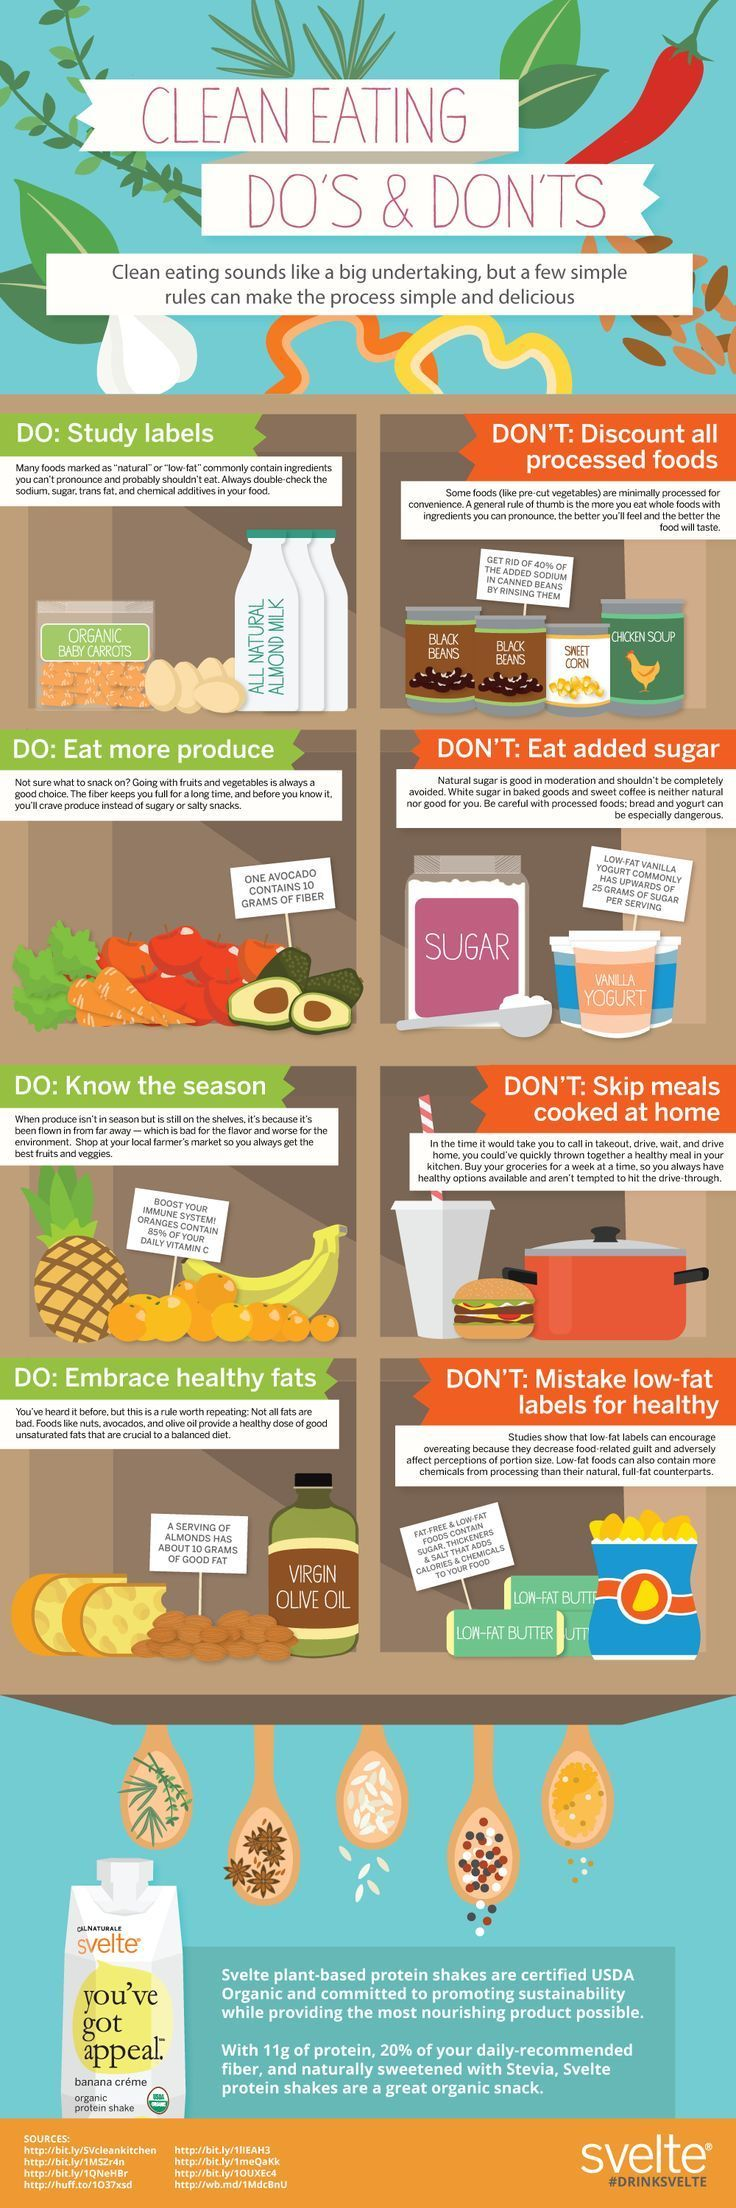 Clean eating sounds like a big undertaking, but a few simple rules can make the process simple and delicious. #cleaneating #infographic